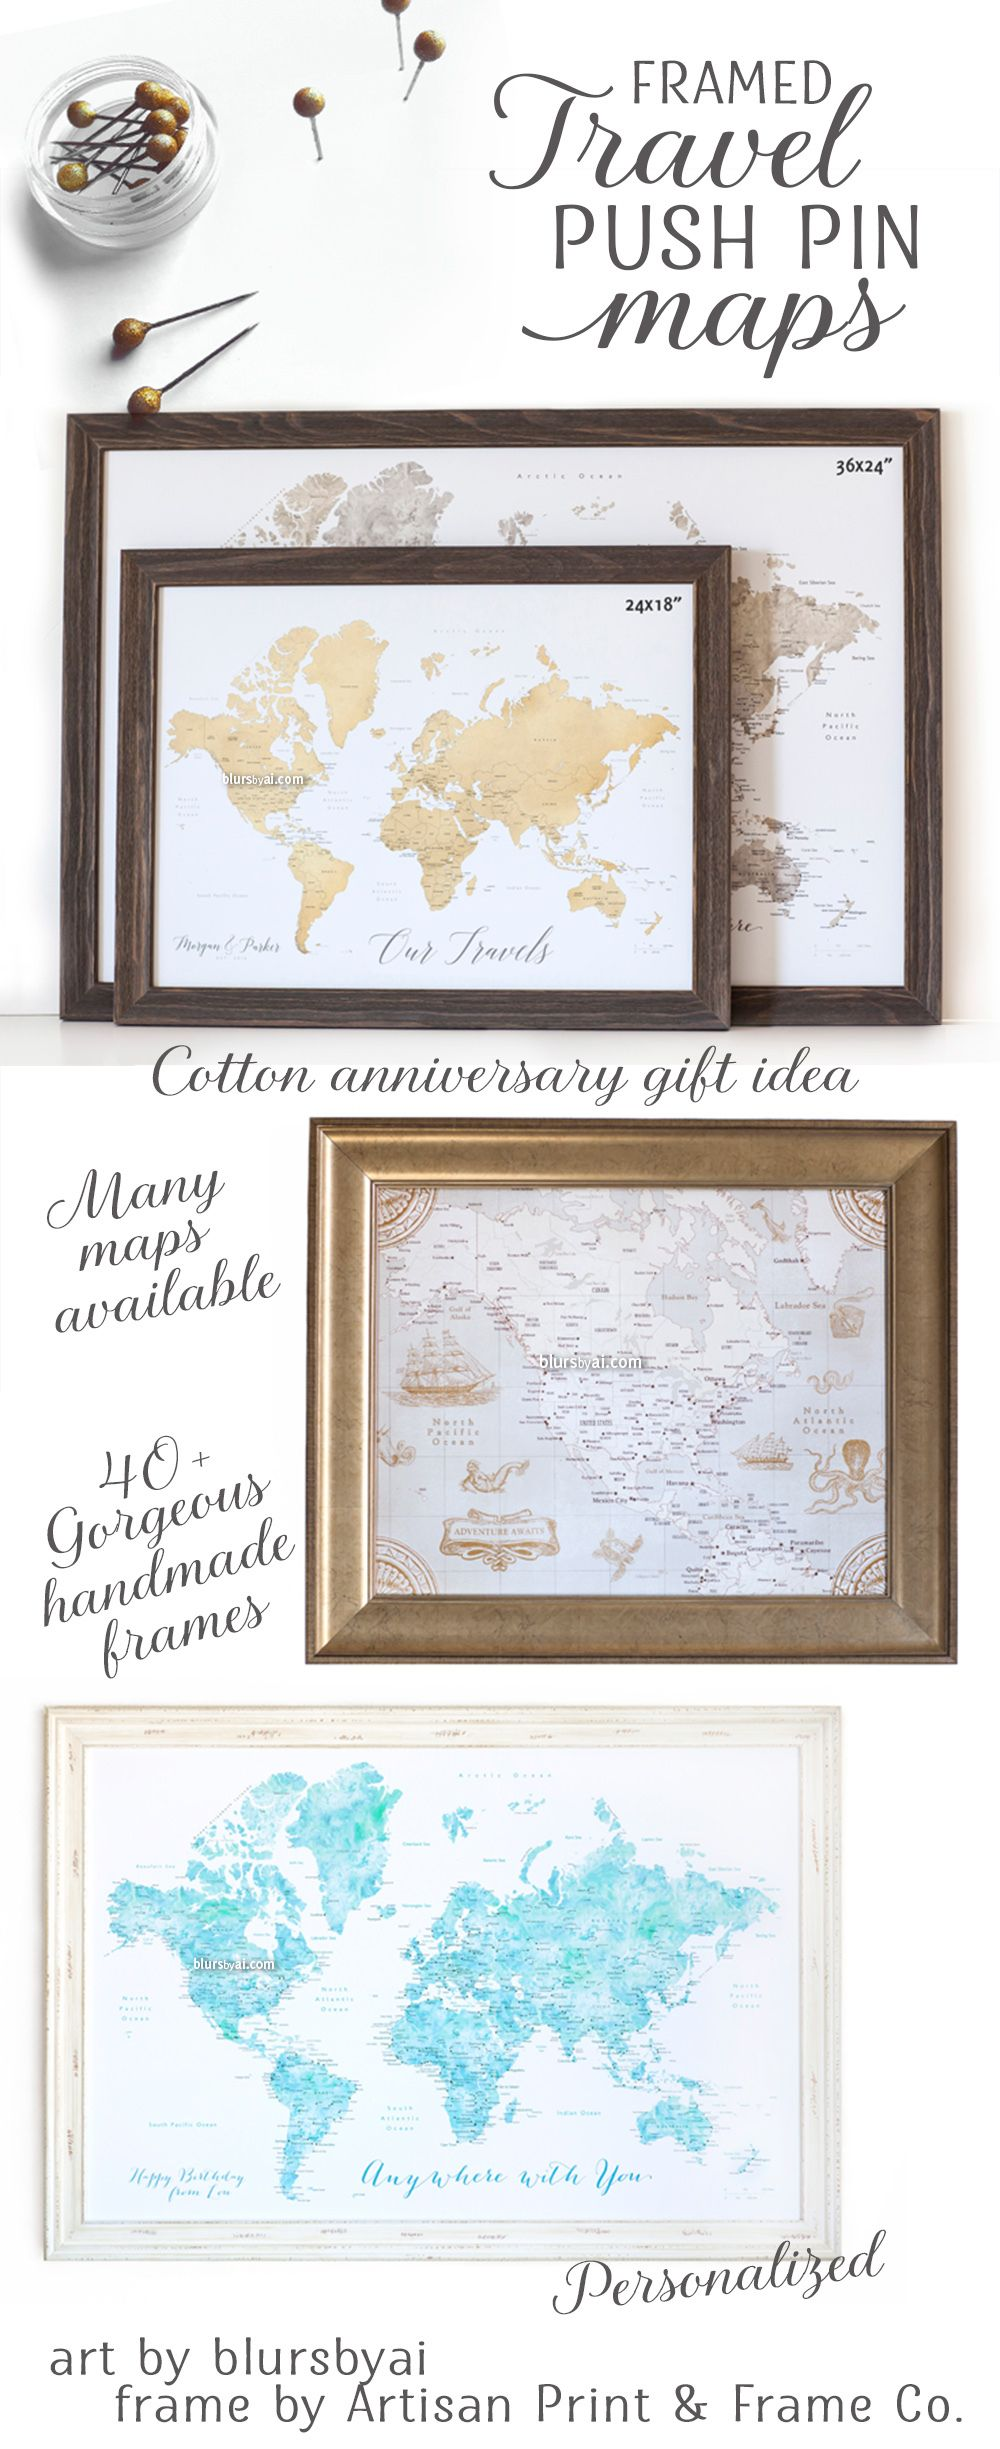 10 off all personalized framed push pin maps blursbyai handmade 10 off all personalized framed push pin maps blursbyai handmade personalized map pinboards gumiabroncs Images